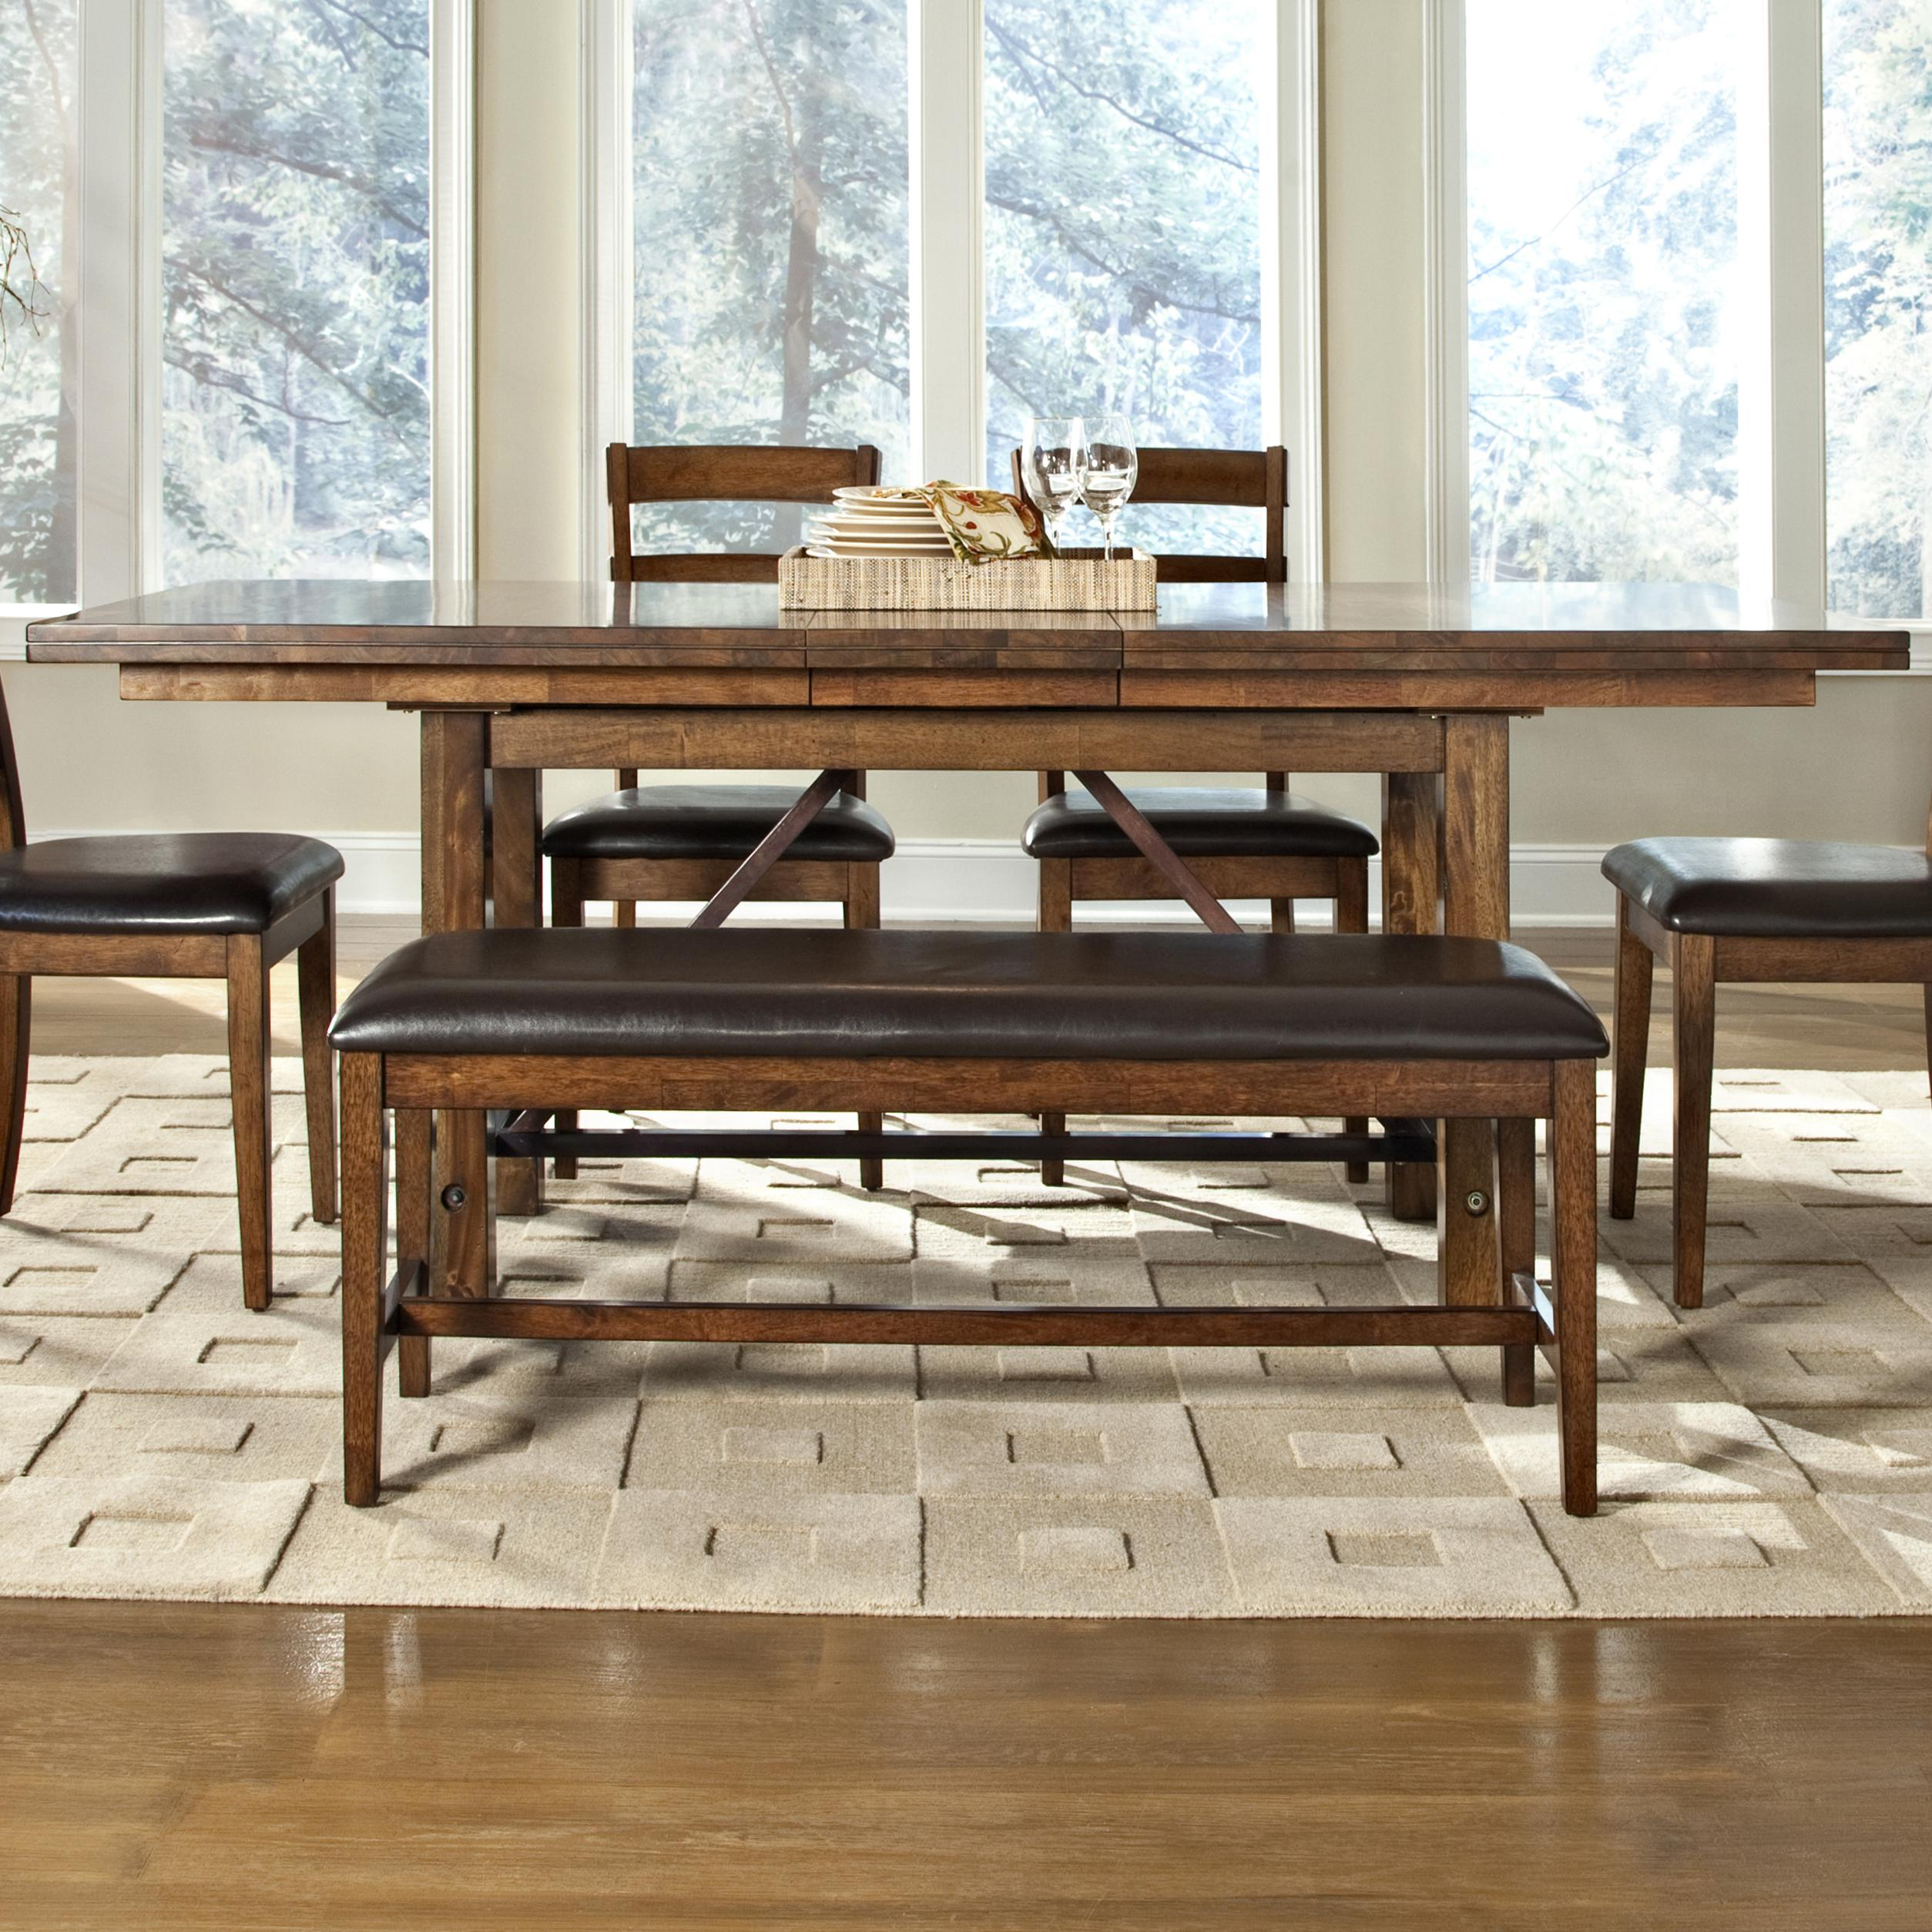 Astounding Santa Clara Dining Table Andrewgaddart Wooden Chair Designs For Living Room Andrewgaddartcom